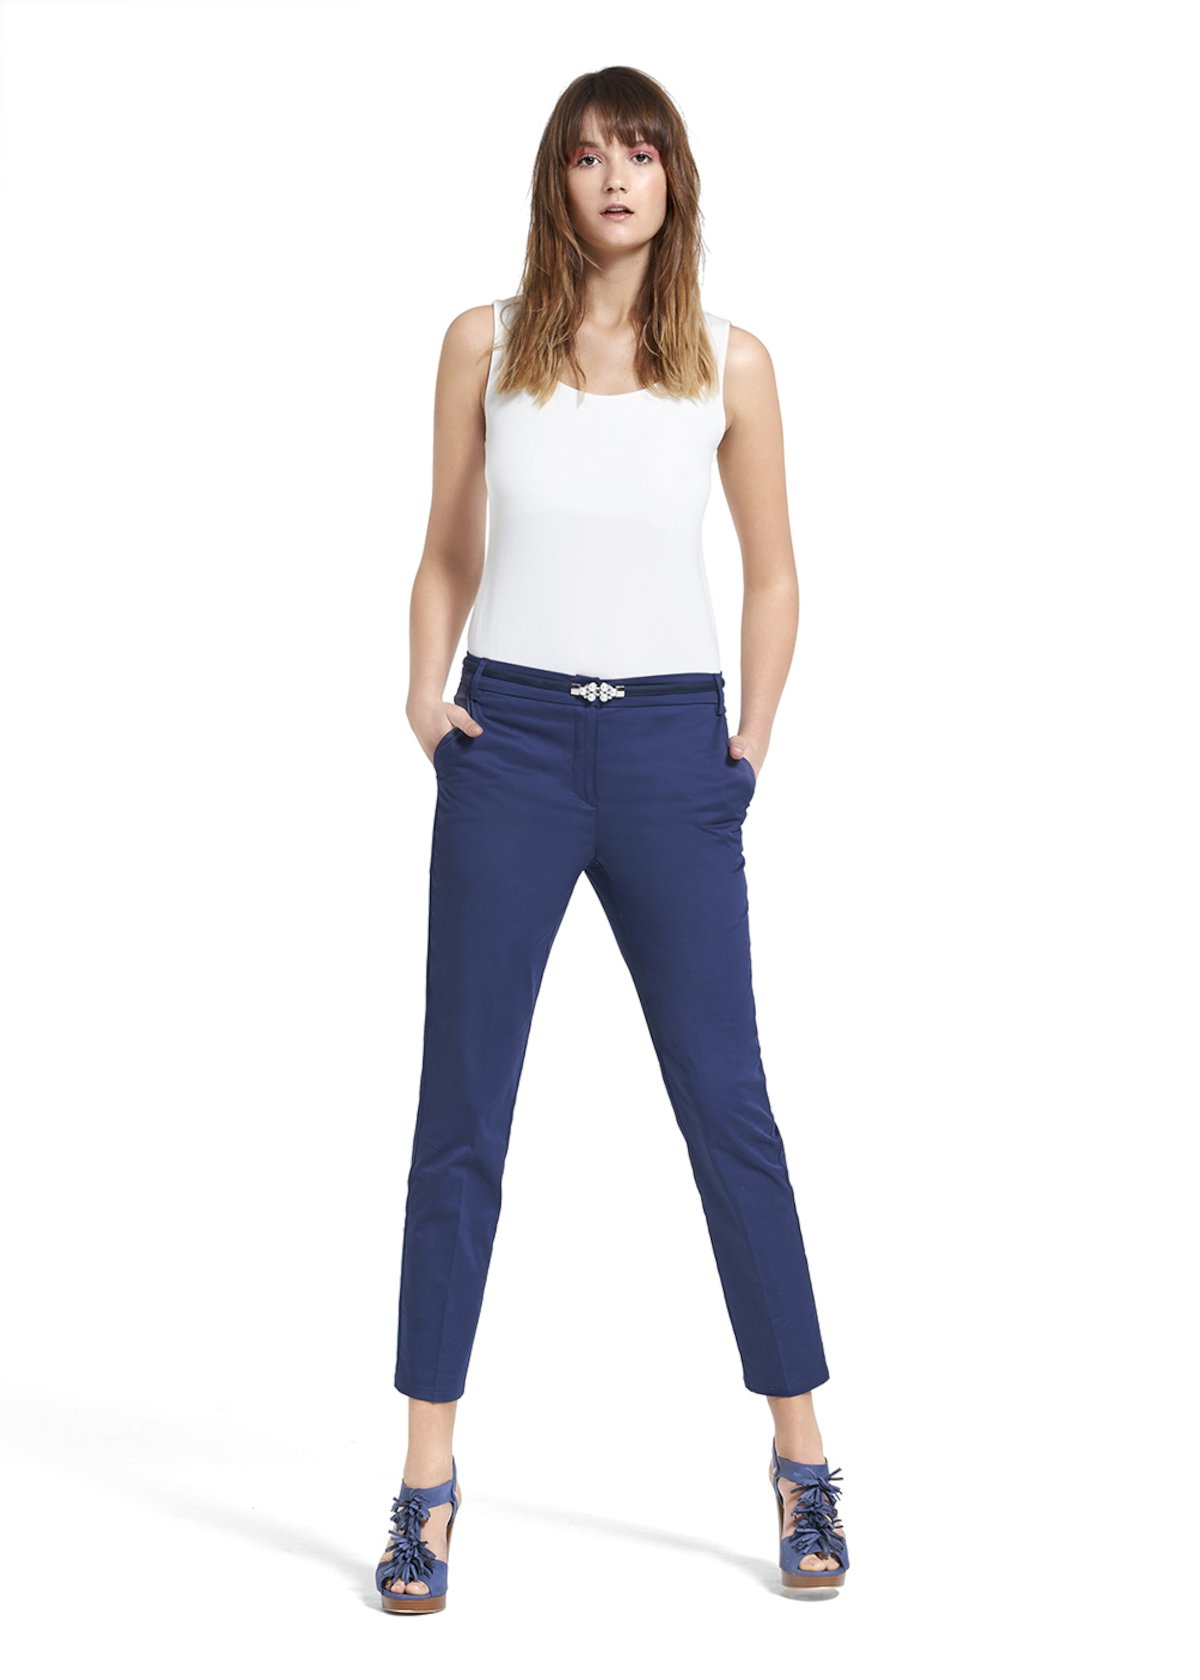 Pants Patric hunter model - Medium Blue - Woman